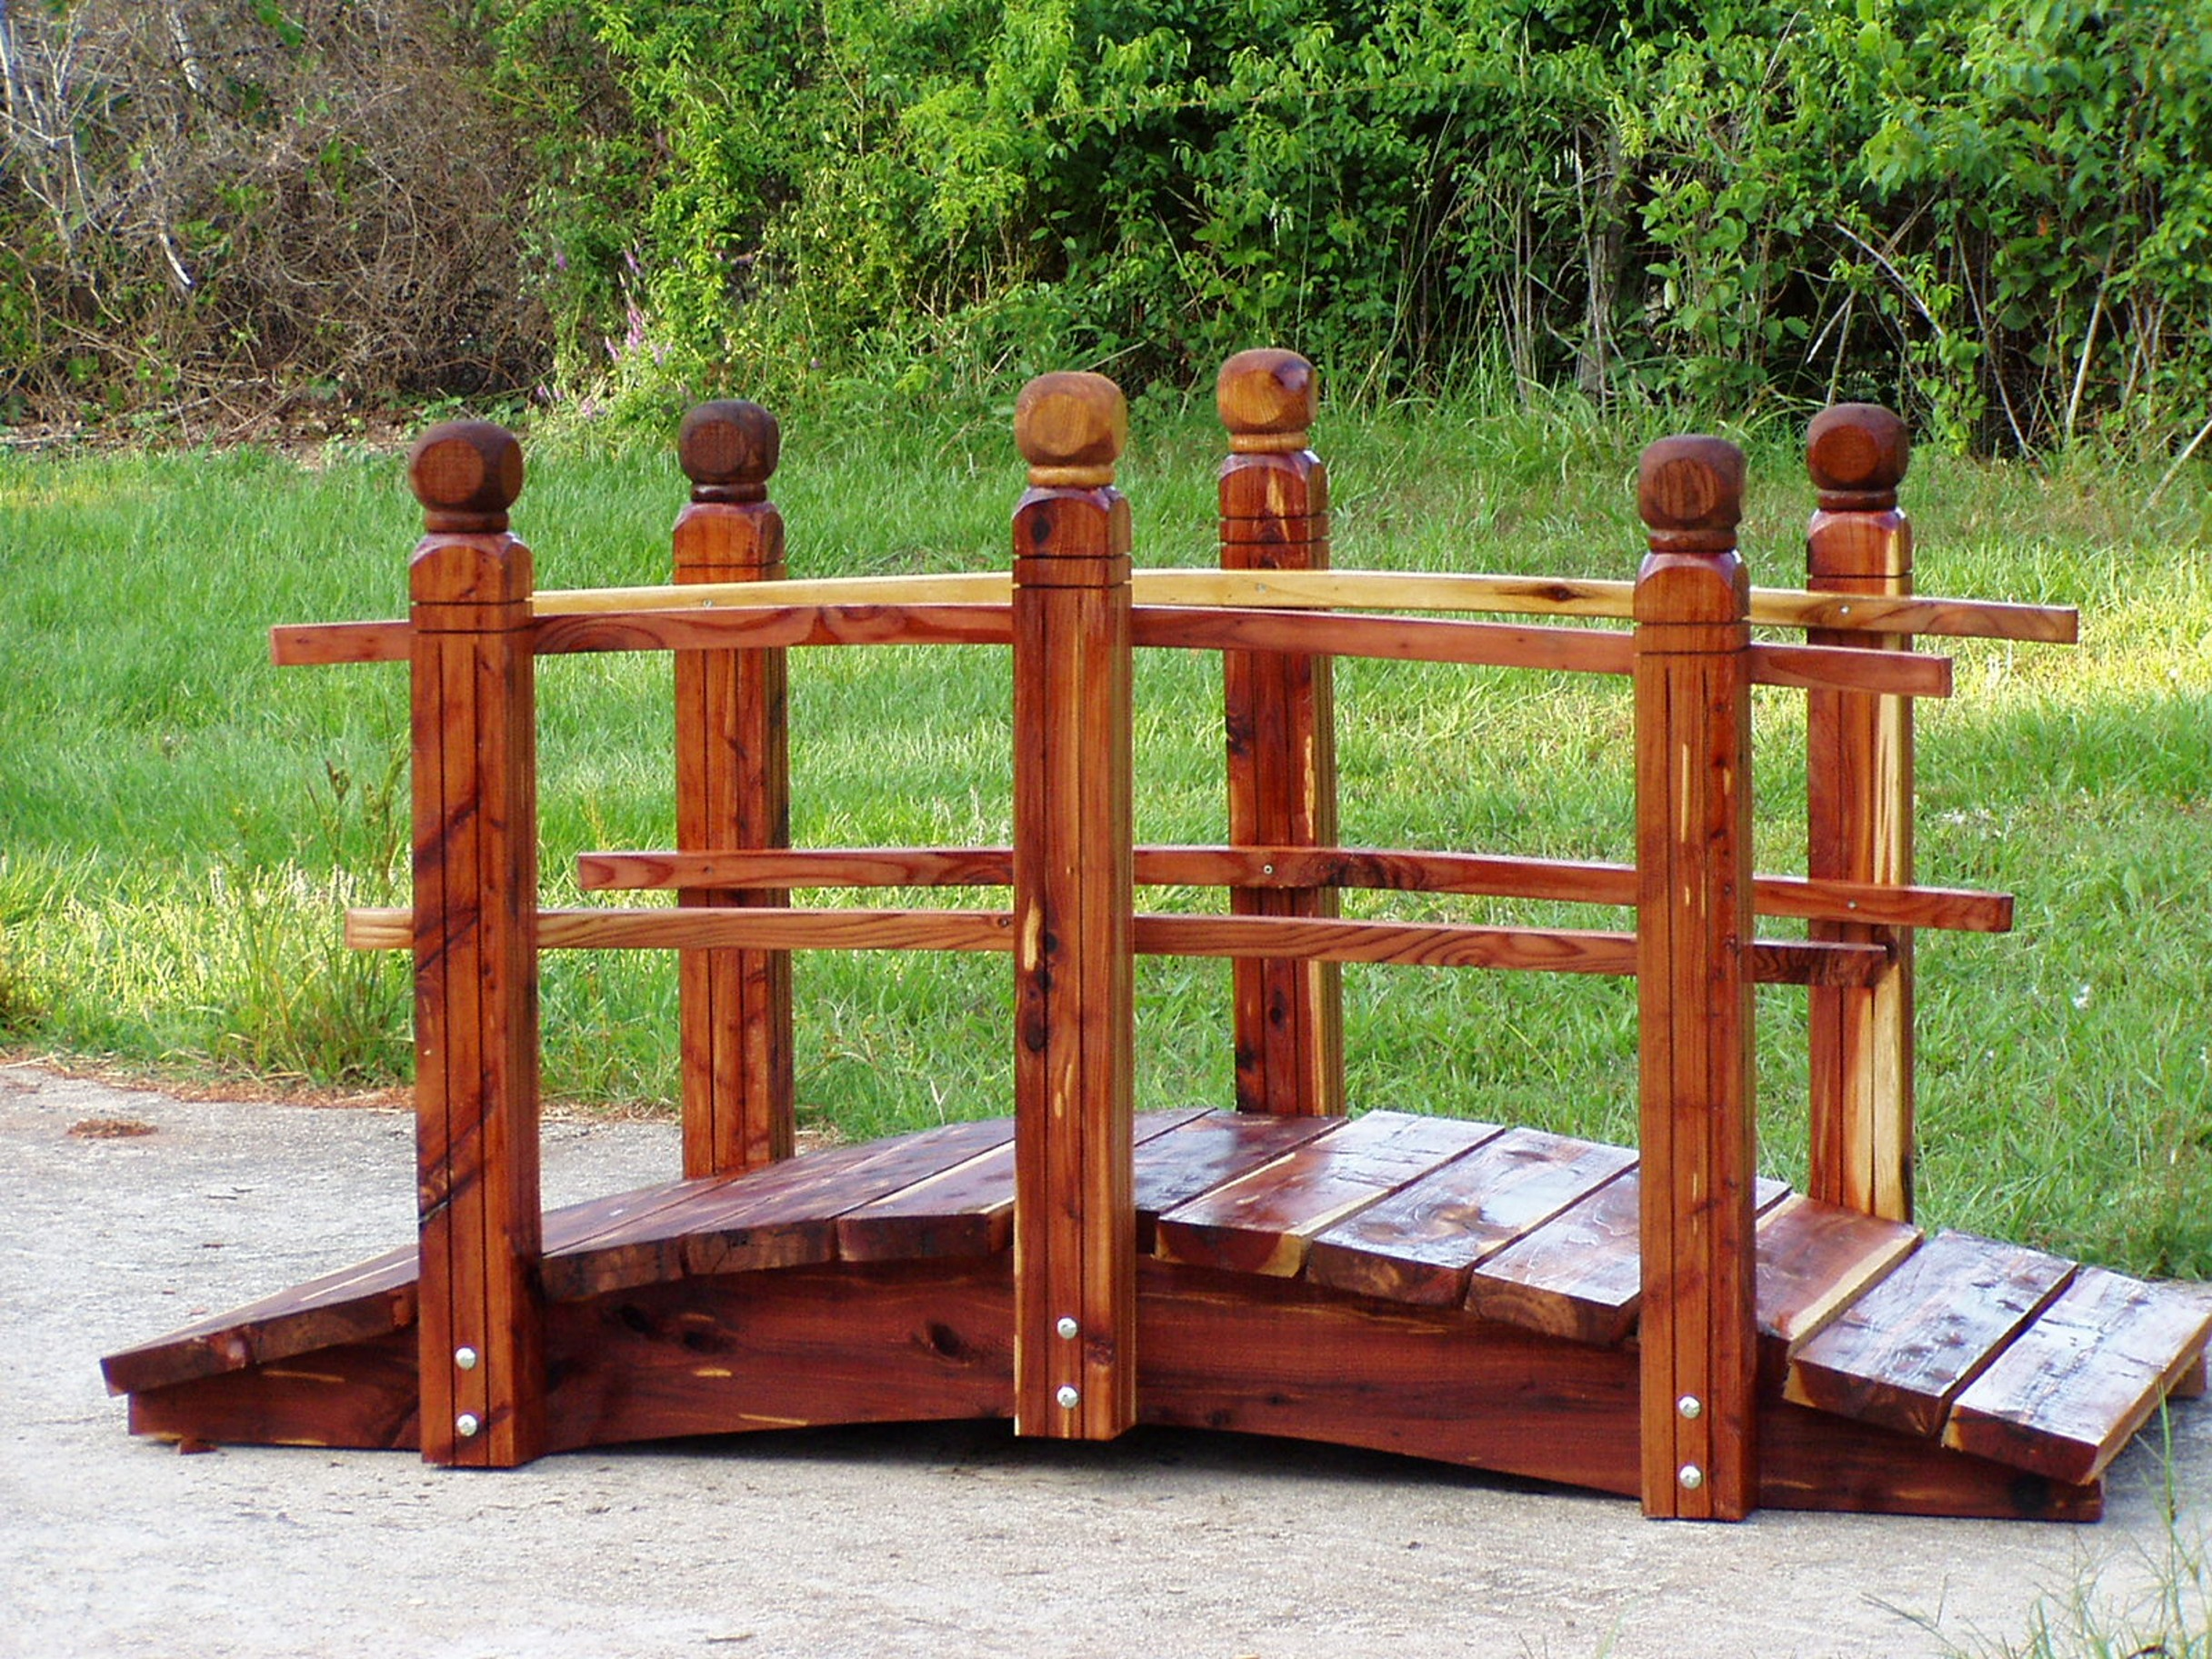 Handcrafted Garden Bridges Featured On Comcast Cable